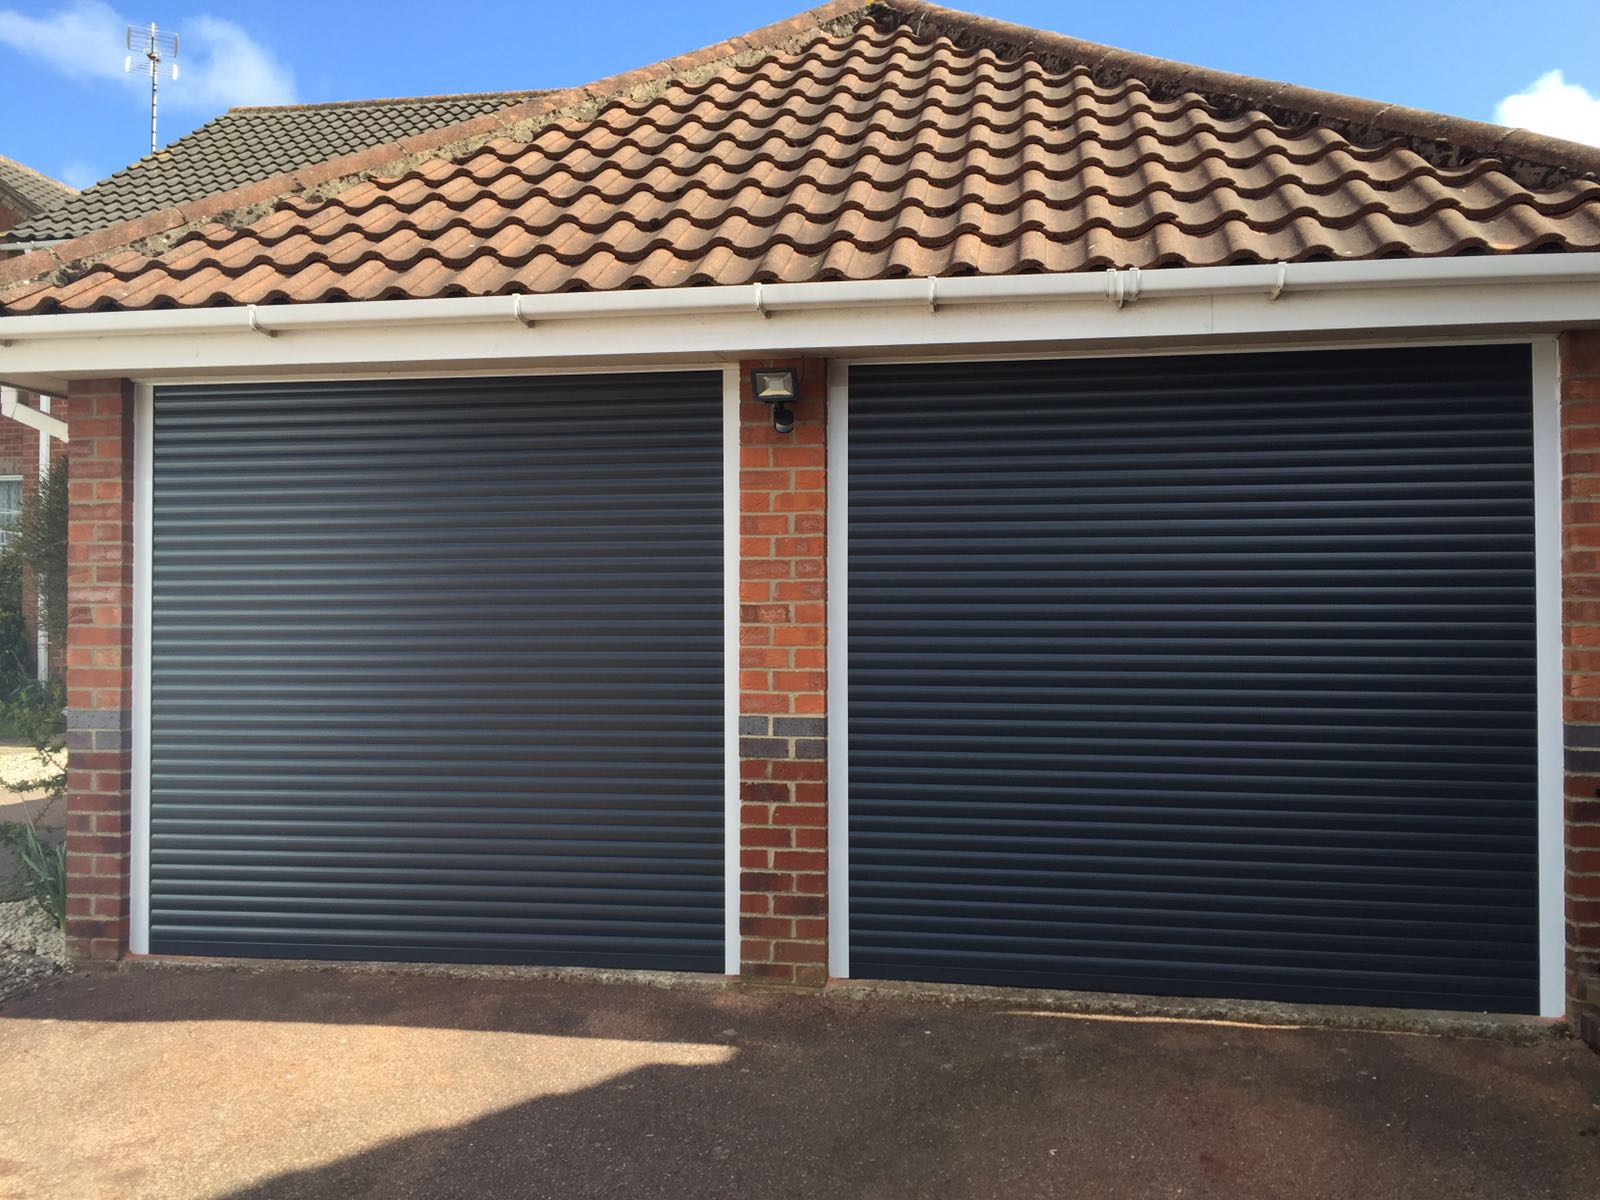 Roller garage door prices price calculator rollerdor for Two door garage